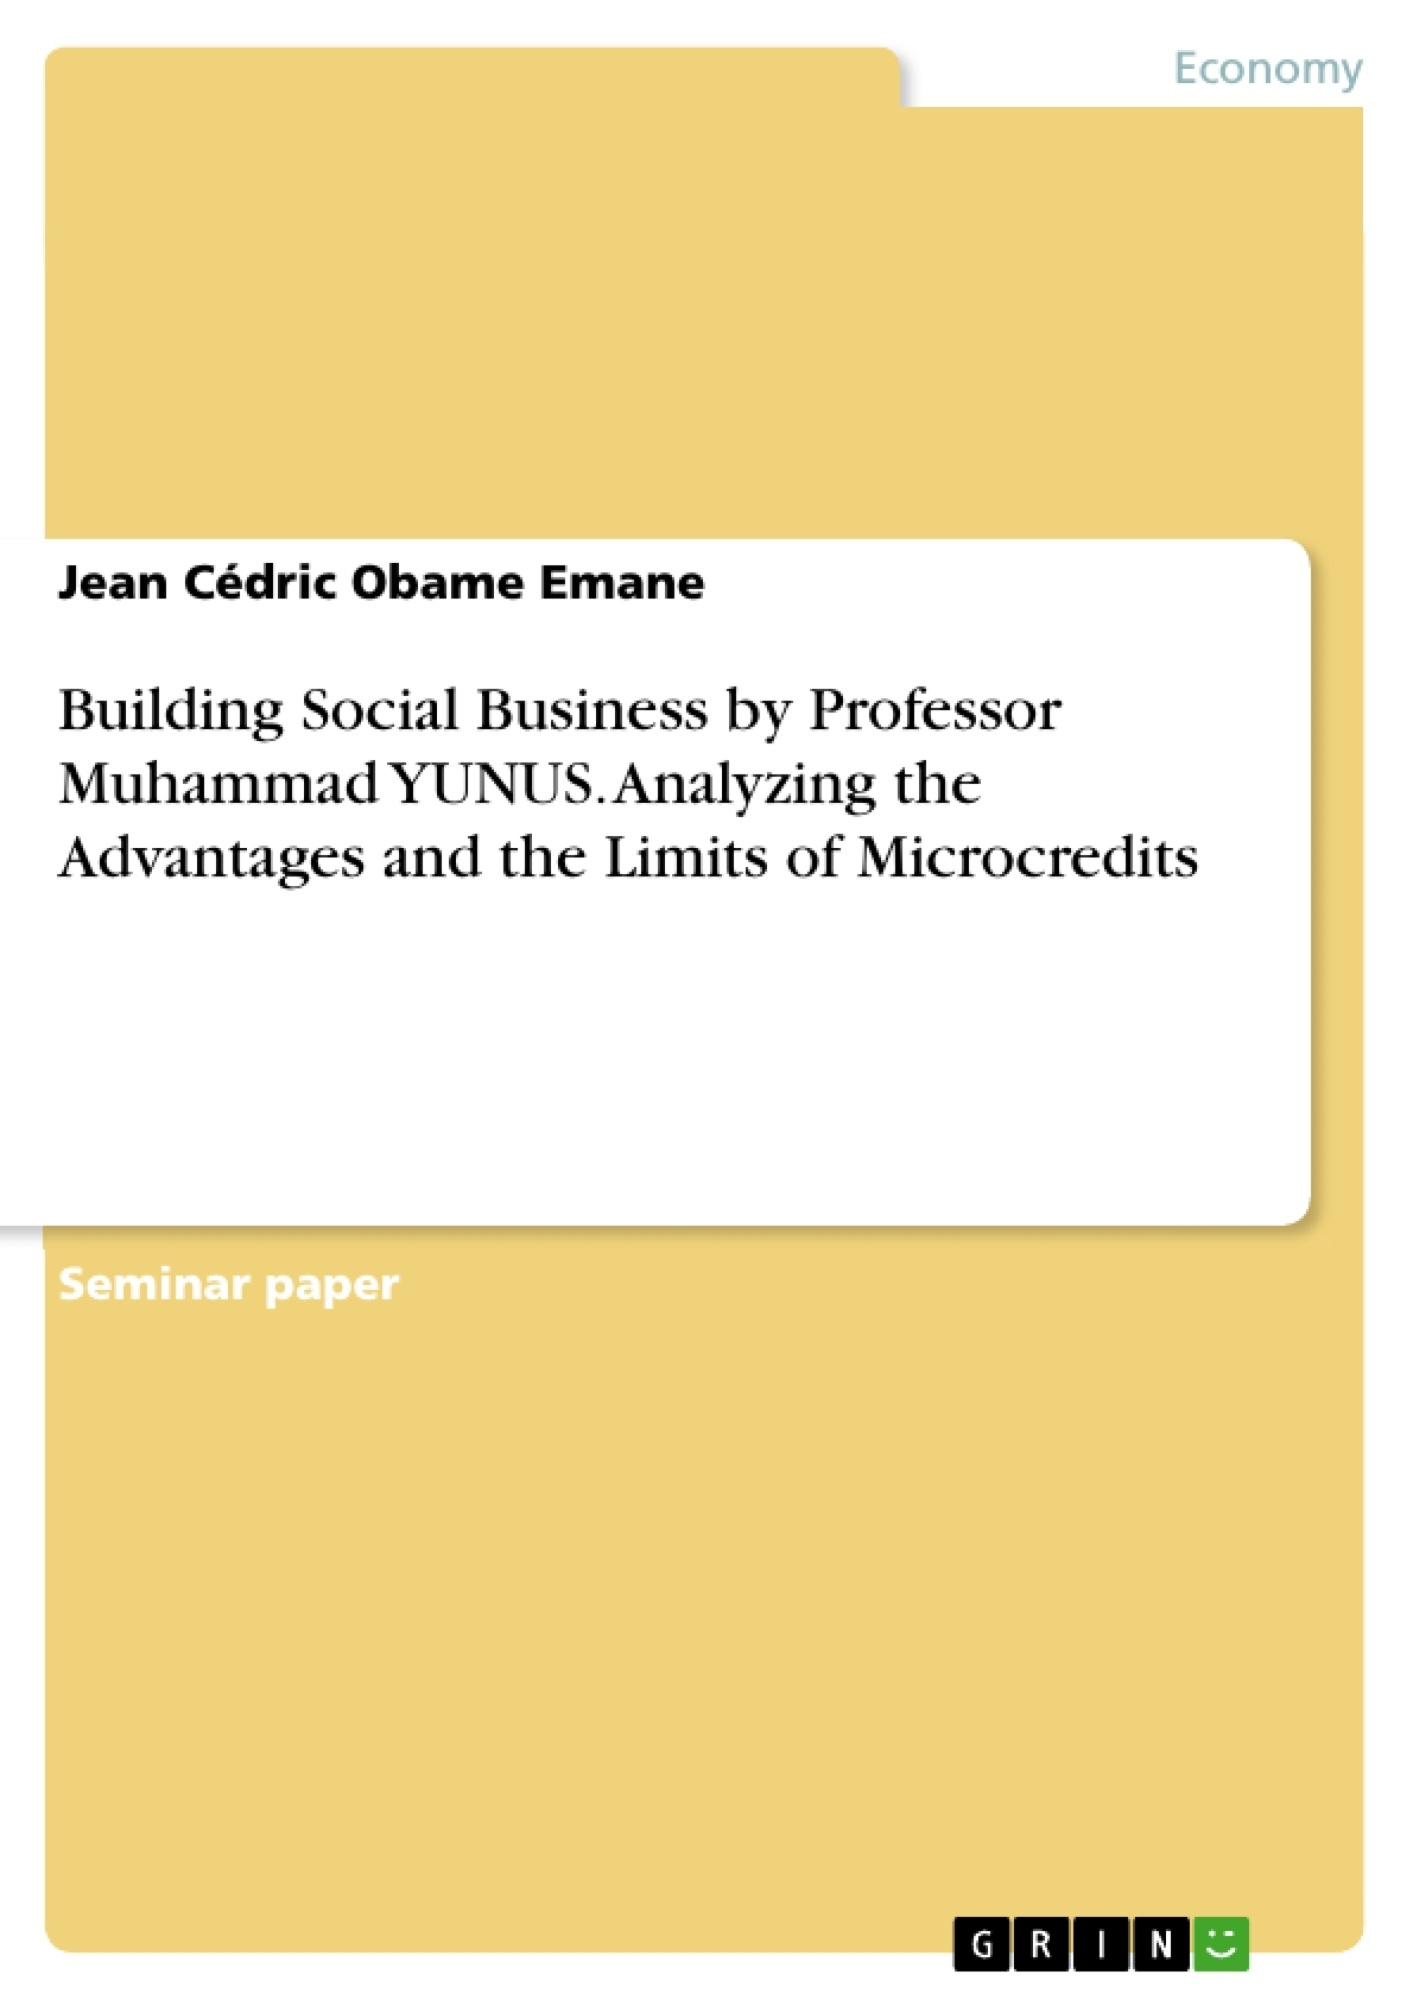 Title: Building Social Business by Professor Muhammad YUNUS. Analyzing the Advantages and the Limits of Microcredits